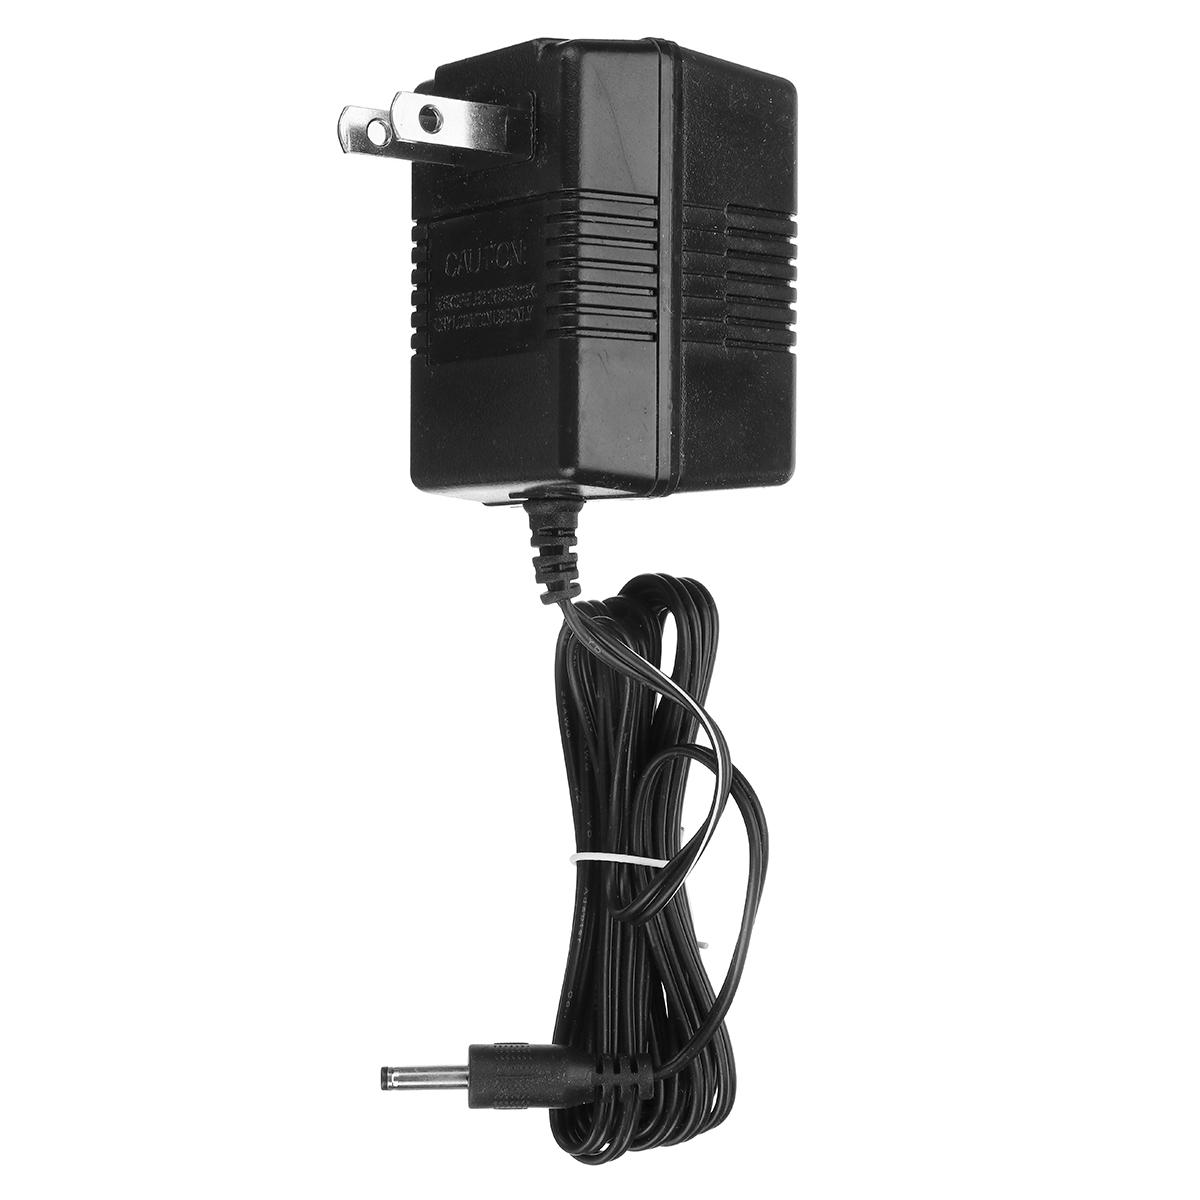 50W Dual USB 12V/5V Solar Panel with Car Charger 10/20/30/40/50A USB Solar Charger Controller for Outdoor Camping LED Light - 10